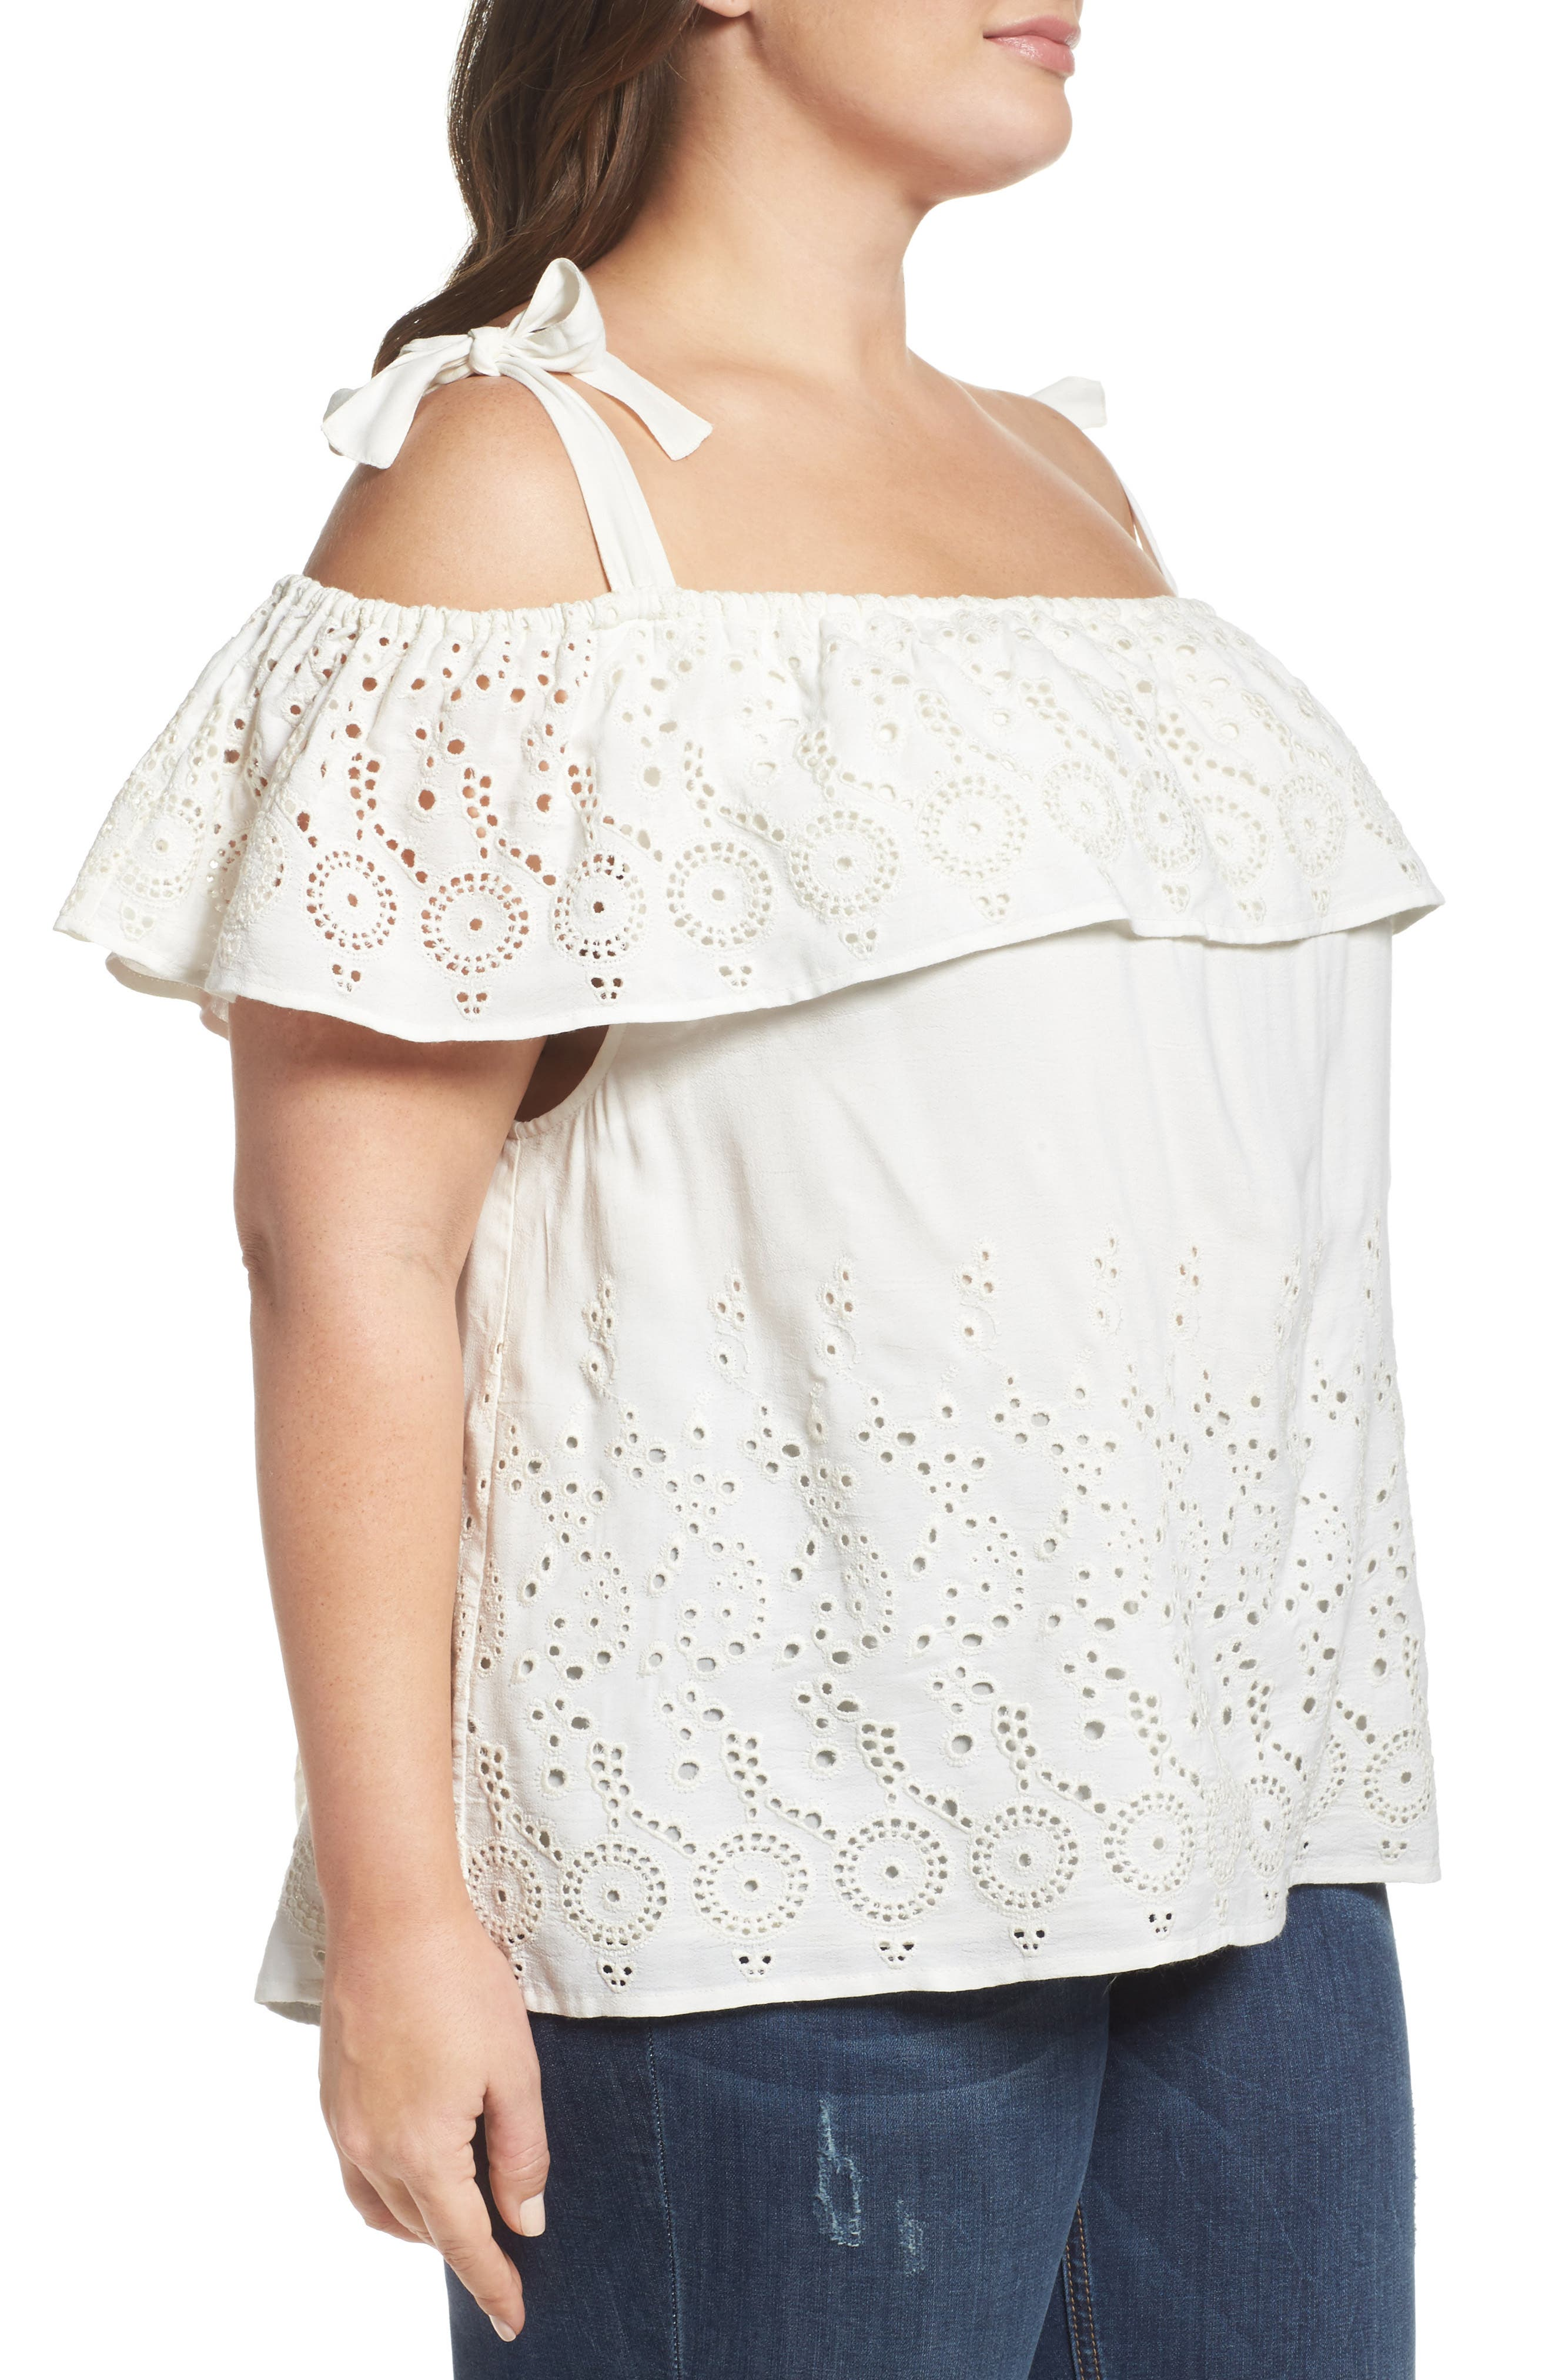 Alternate Image 3  - Lucky Brand Eyelet Embroidered Off the Shoulder Top (Plus Size)